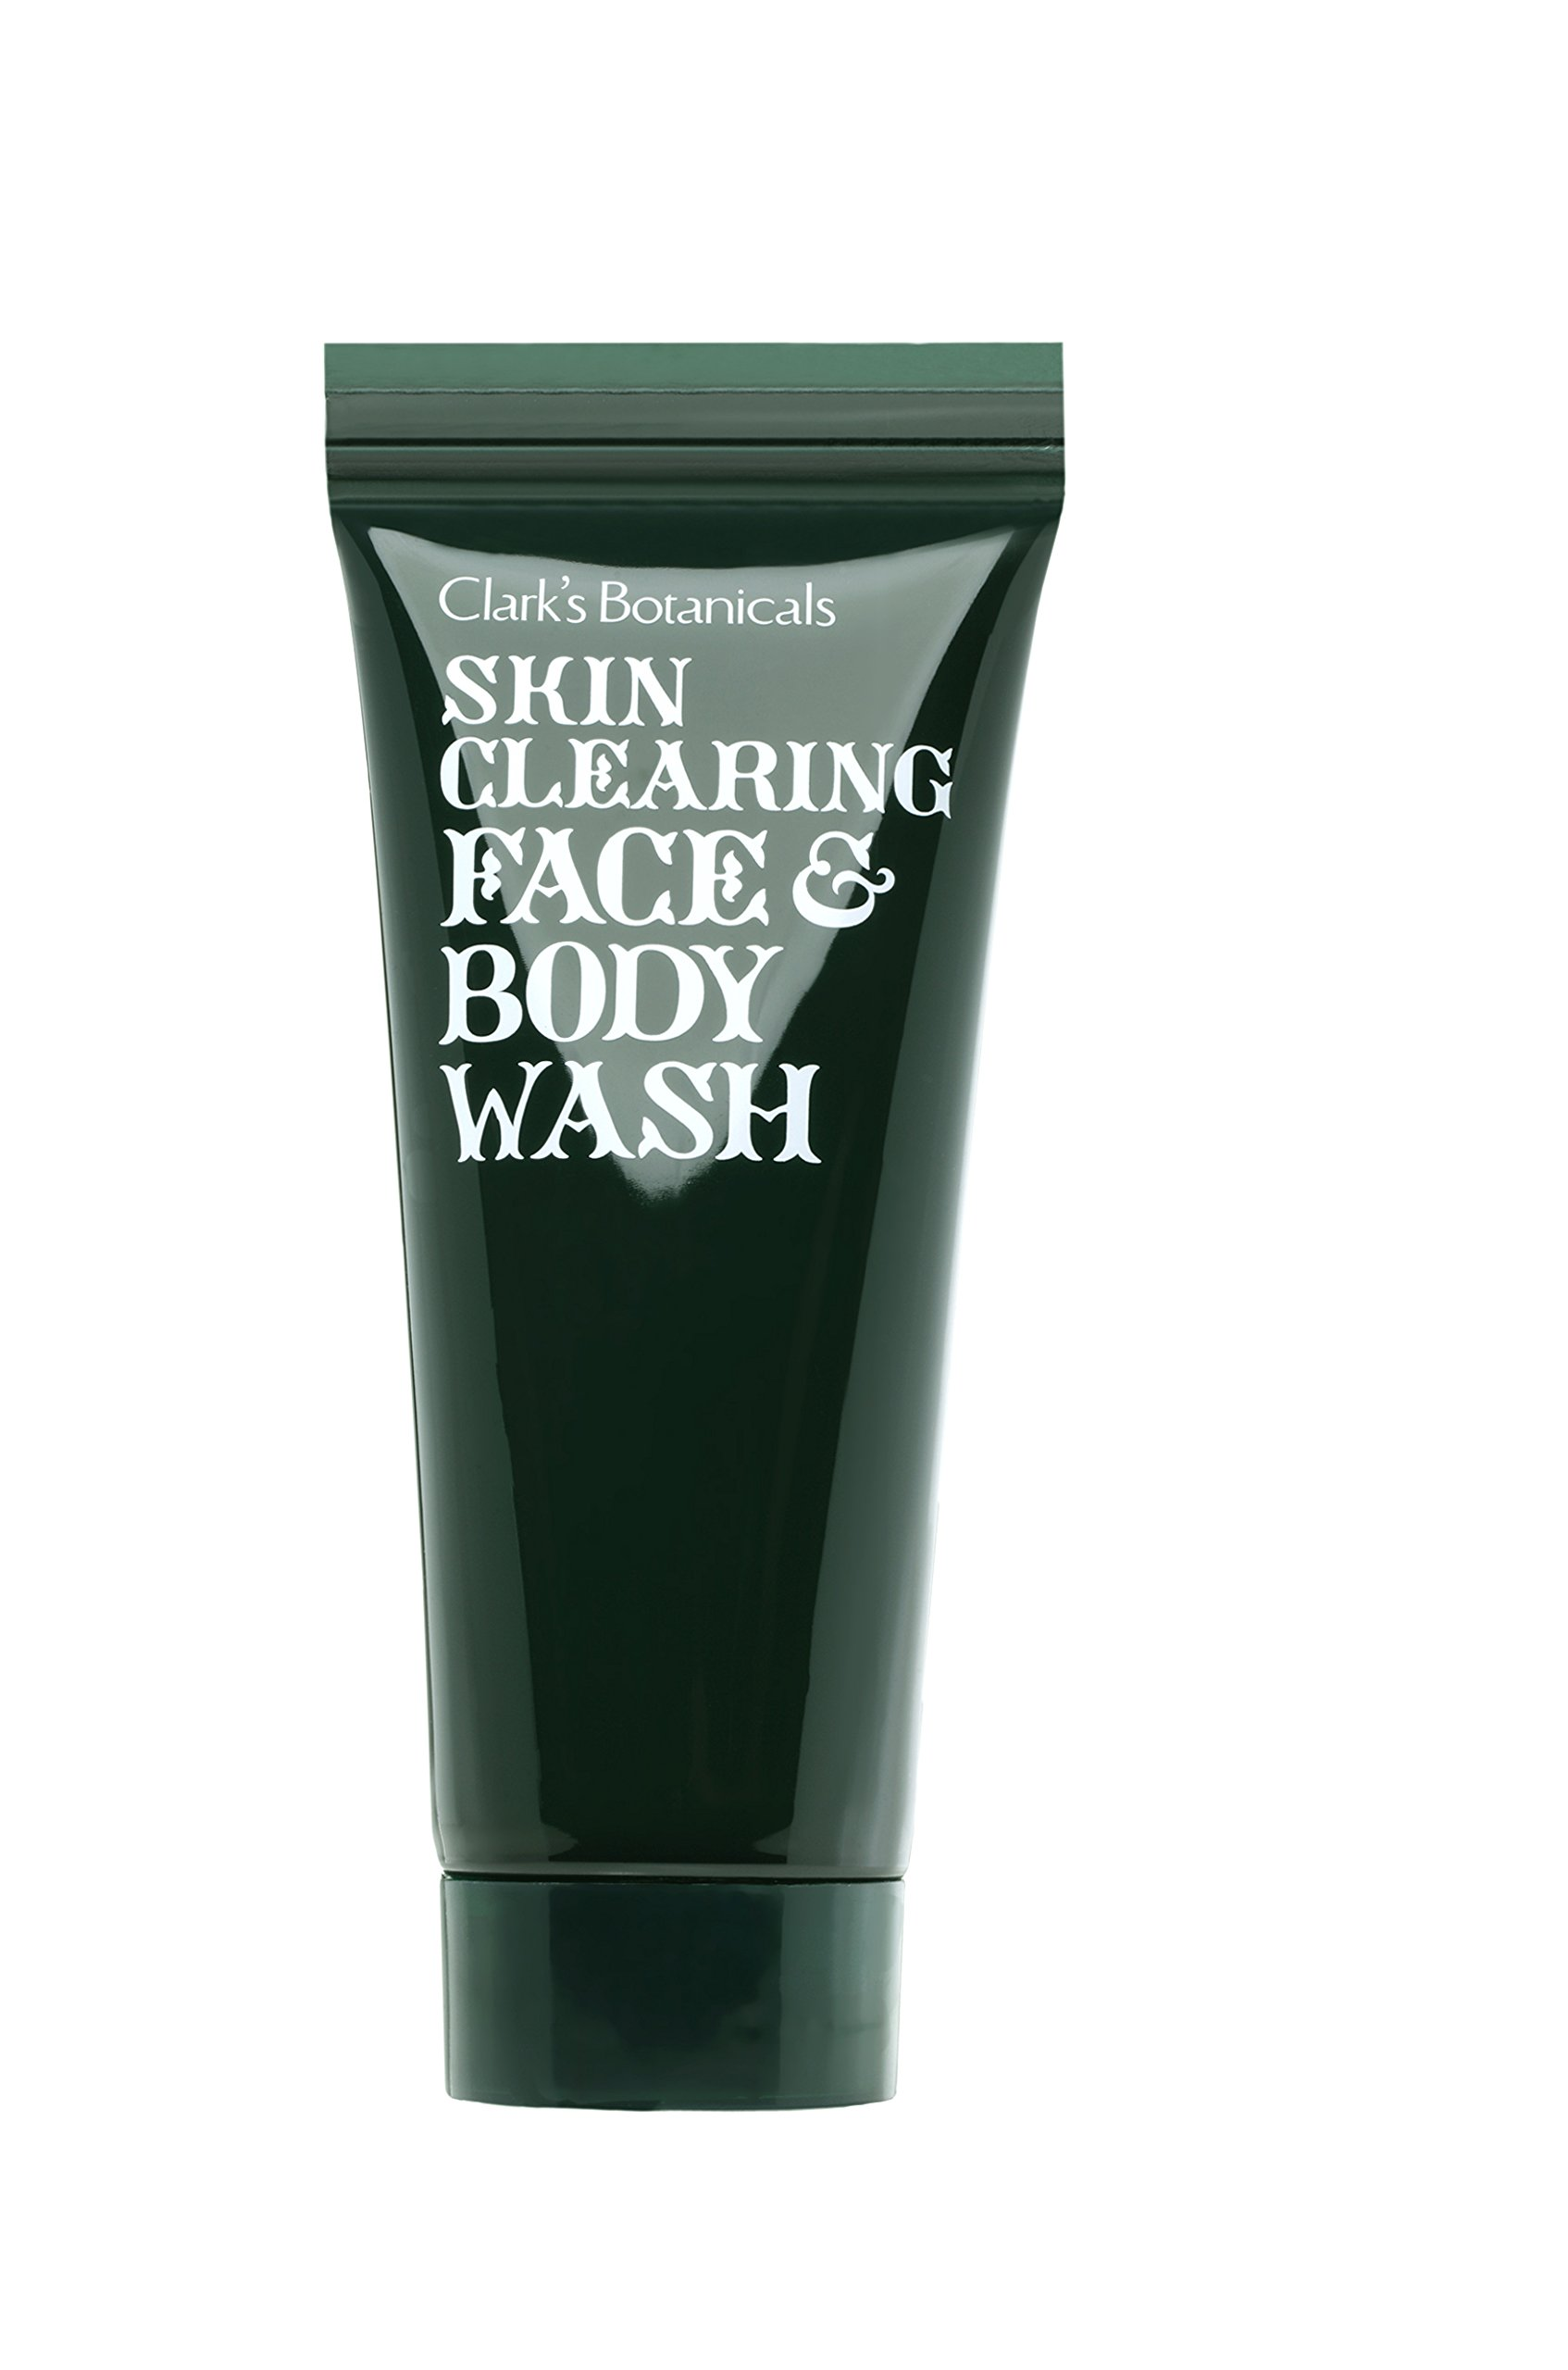 Clark's Botanicals Skin Clearing Face and Body Wash with Salicylic Acid for  Oily and Problem Skin